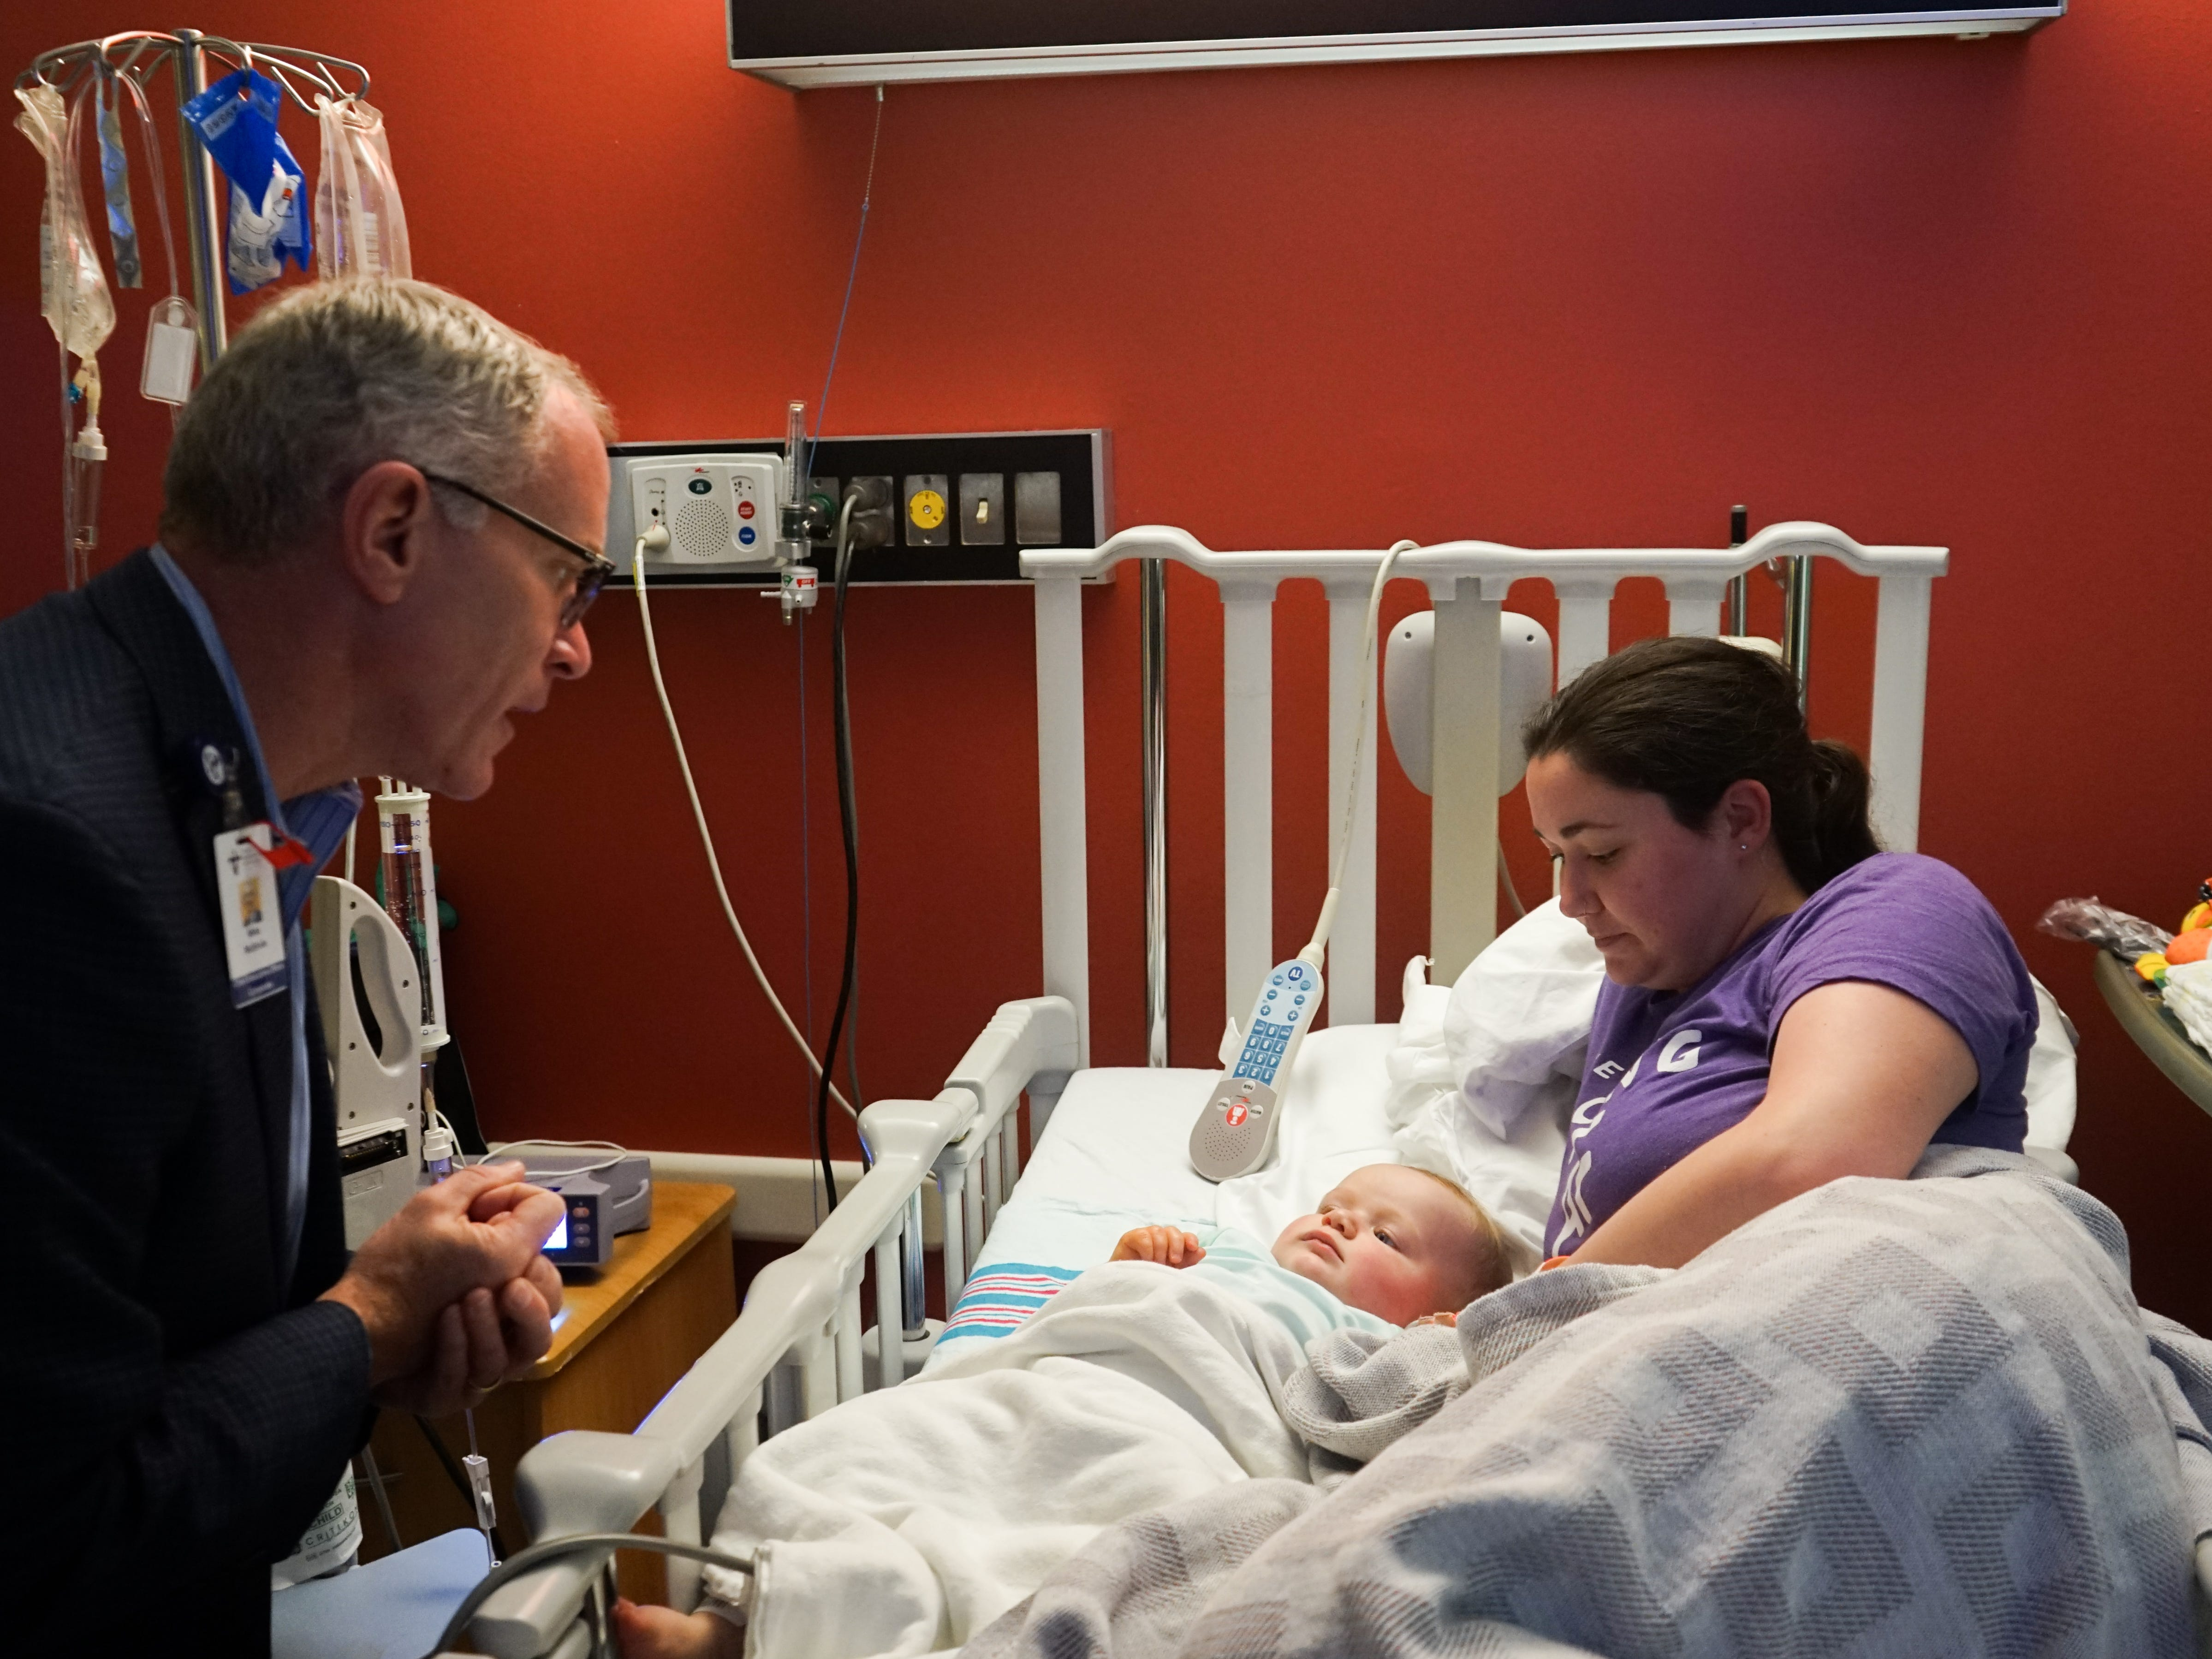 Mike McBride, chief executive officer for the Franciscan Missionaries of Our Lady Health System, visits with Oliver Henry and his mom, Elizabeth, in the Pediatrics department at Our Lady of Lourdes Women's & Children's Hospital on Friday, March 1. On Friday, the hospital became part of the local Our Lady of Lourdes system, which also is part of the Baton Rouge-based Franciscan Missionaries of Our Lady Health System.